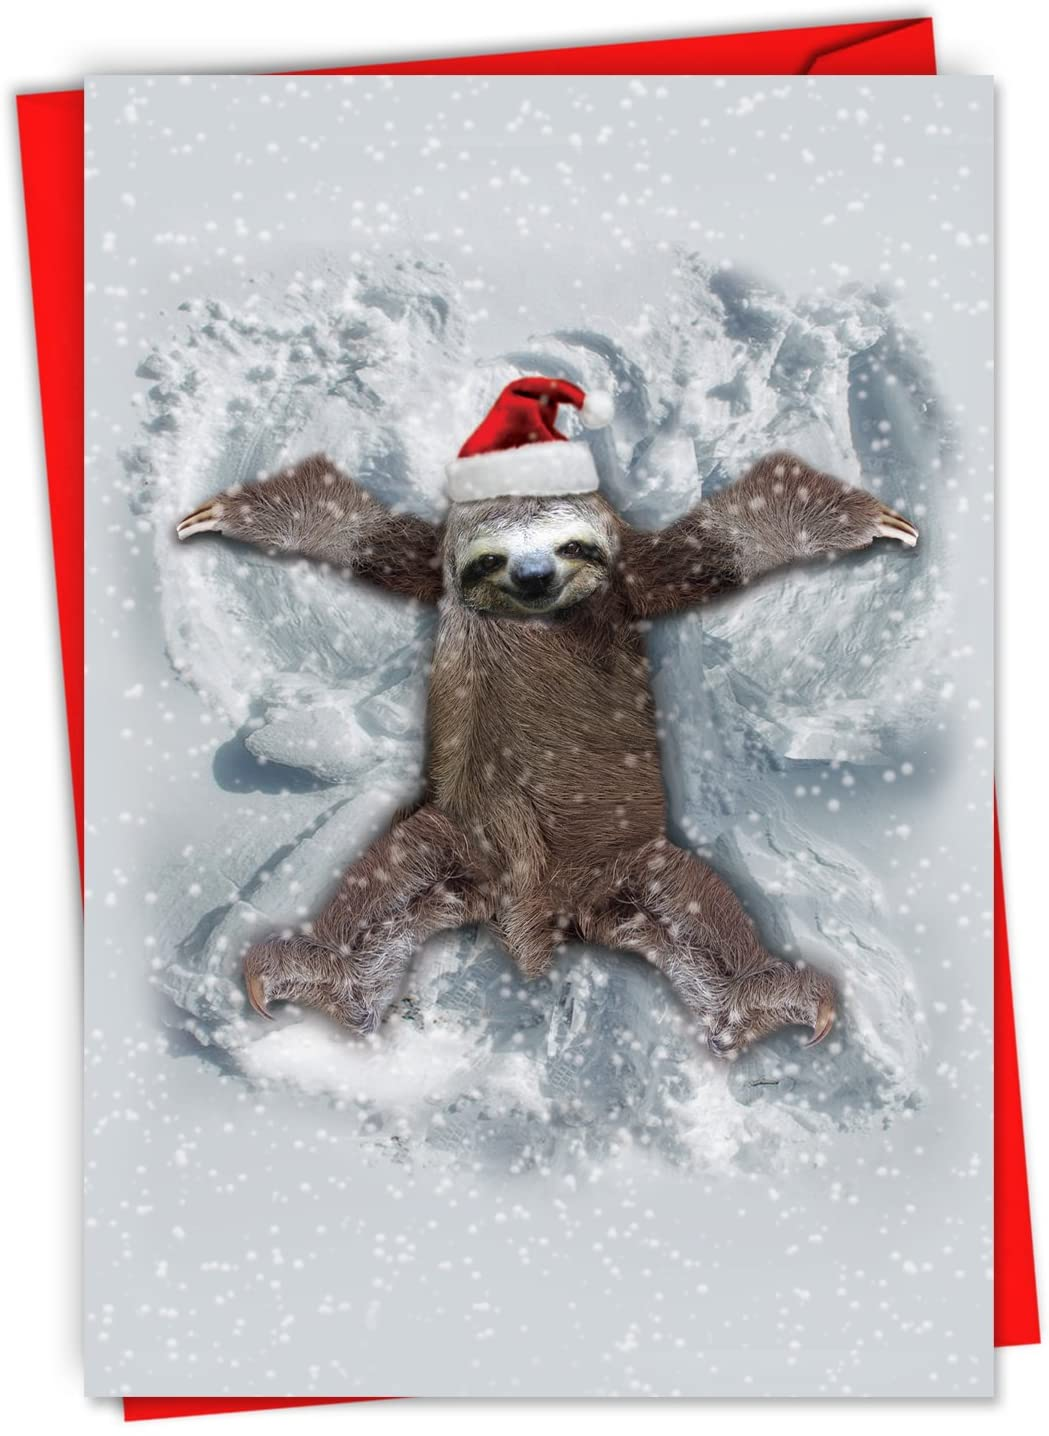 Sloth Angel Wings - 12 Boxed Christmas Note Cards with Envelopes (4.63 x 6.75 Inch) - Zoo Animal Greeting Card for Kids, Parents - Xmas Season's Greetings for the Yuletide Season C6214XSG-B12x1